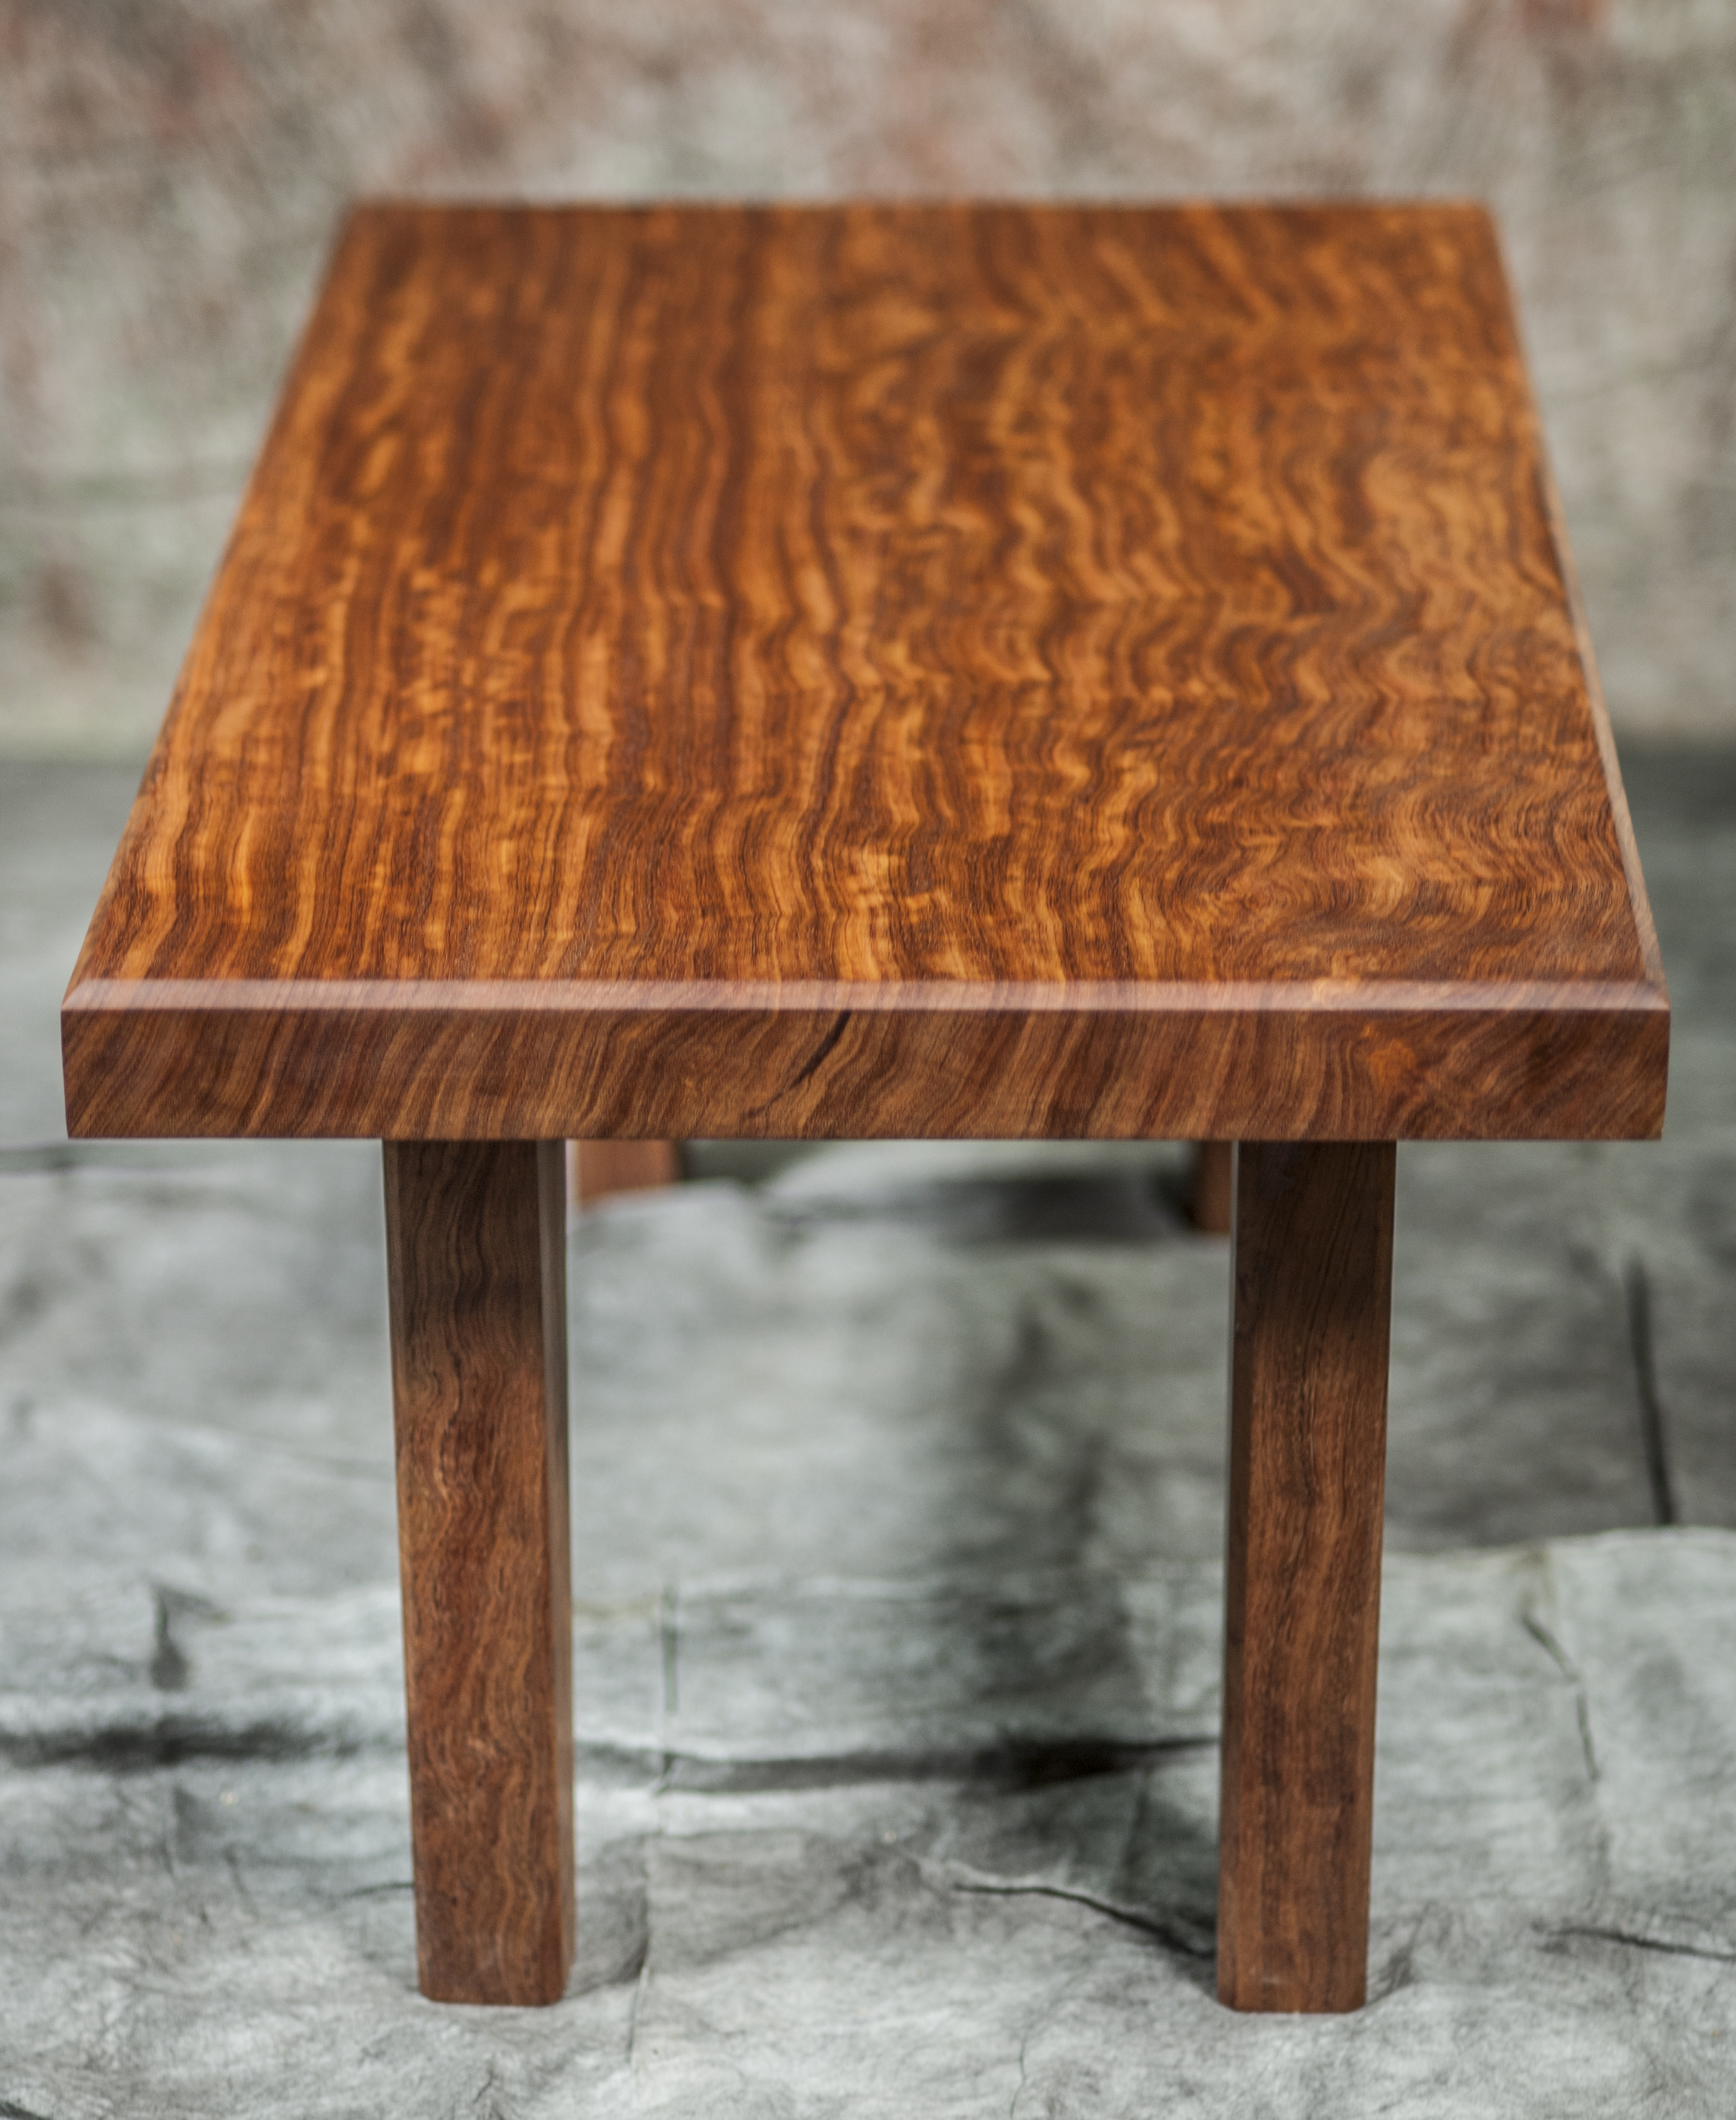 Bubinga Vine Table With Wooden Legs - Artumwood